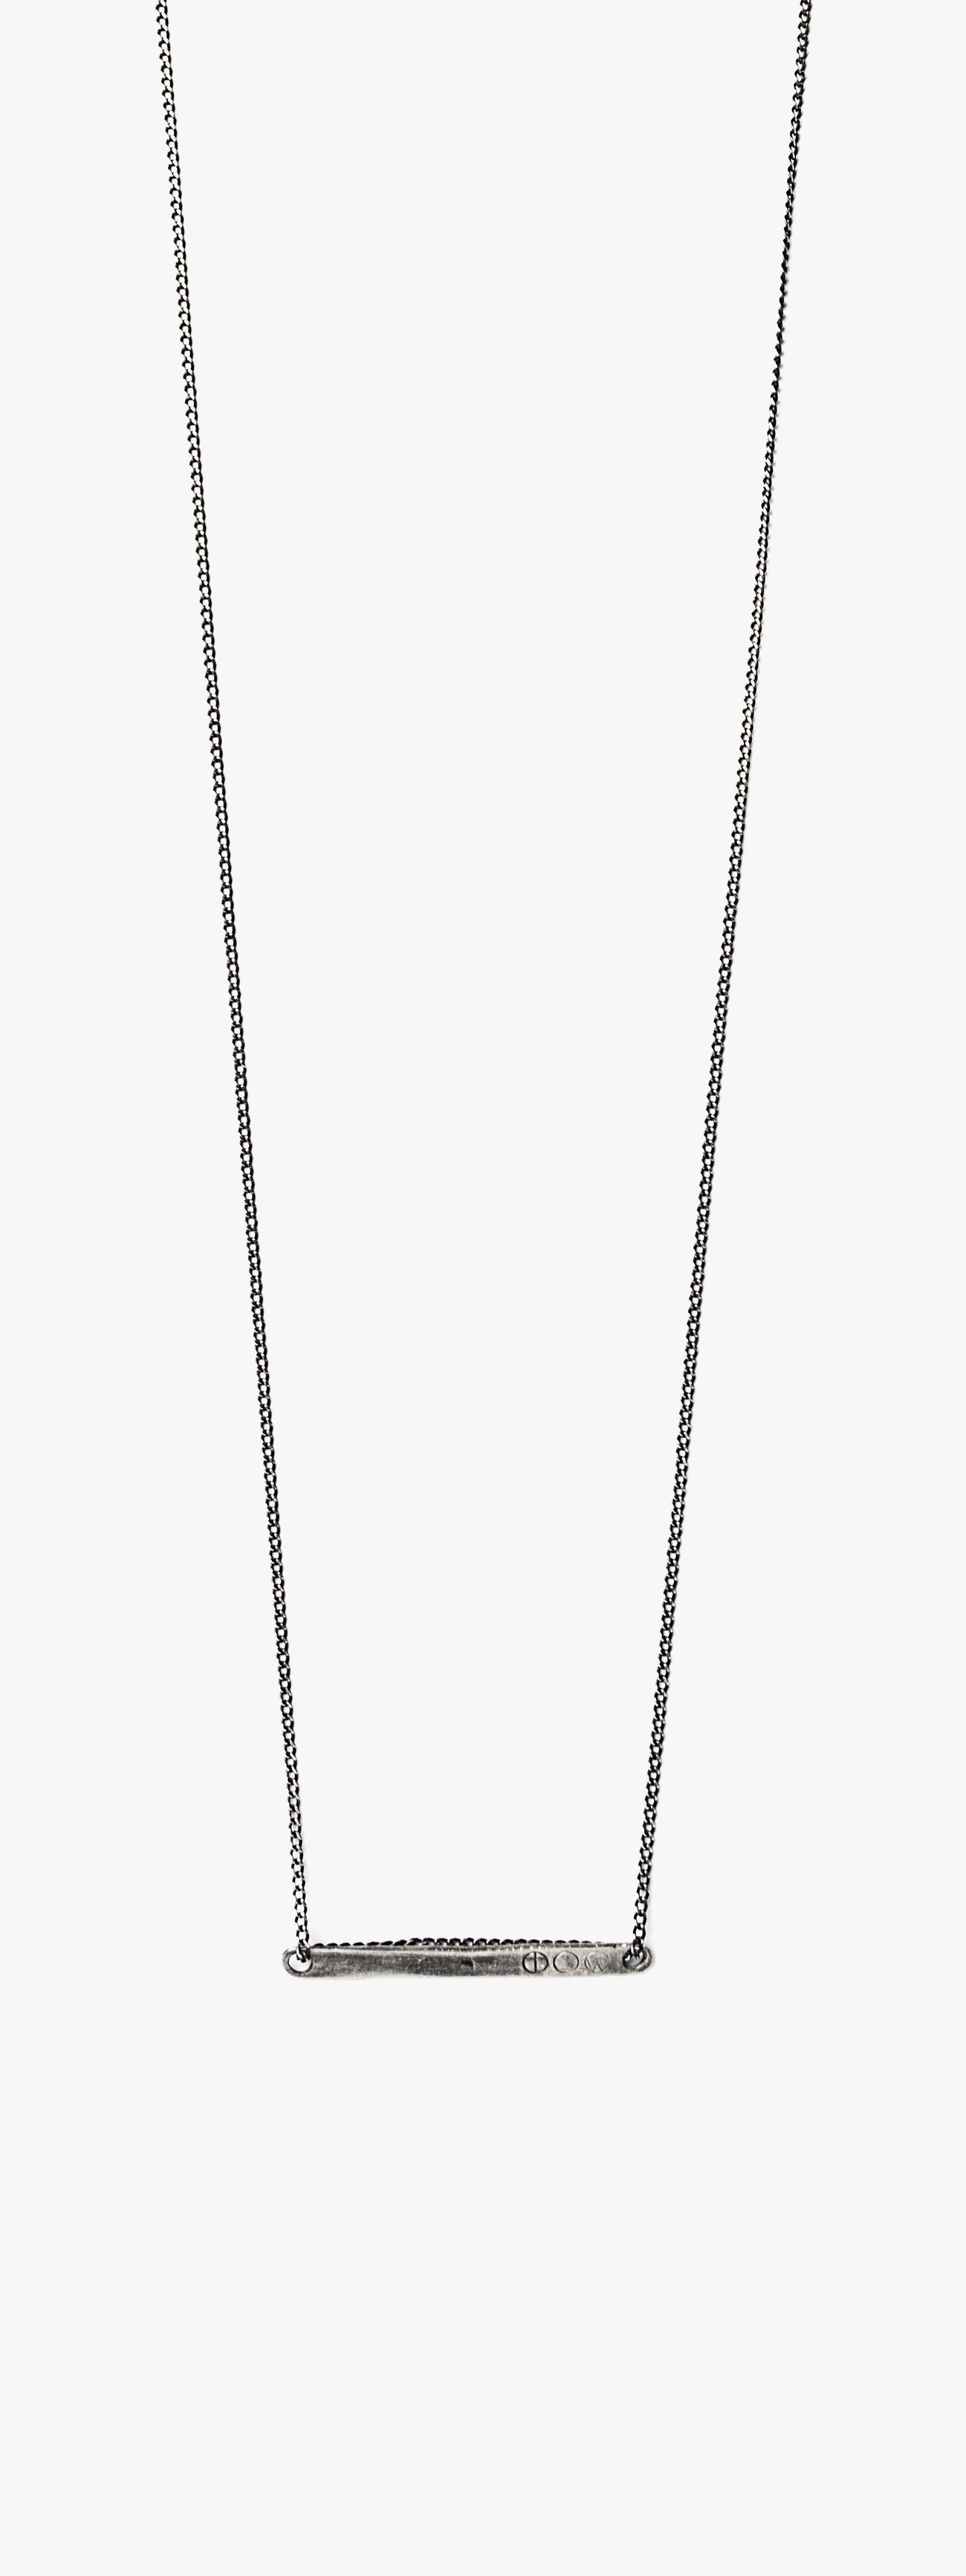 Image of ID Necklace